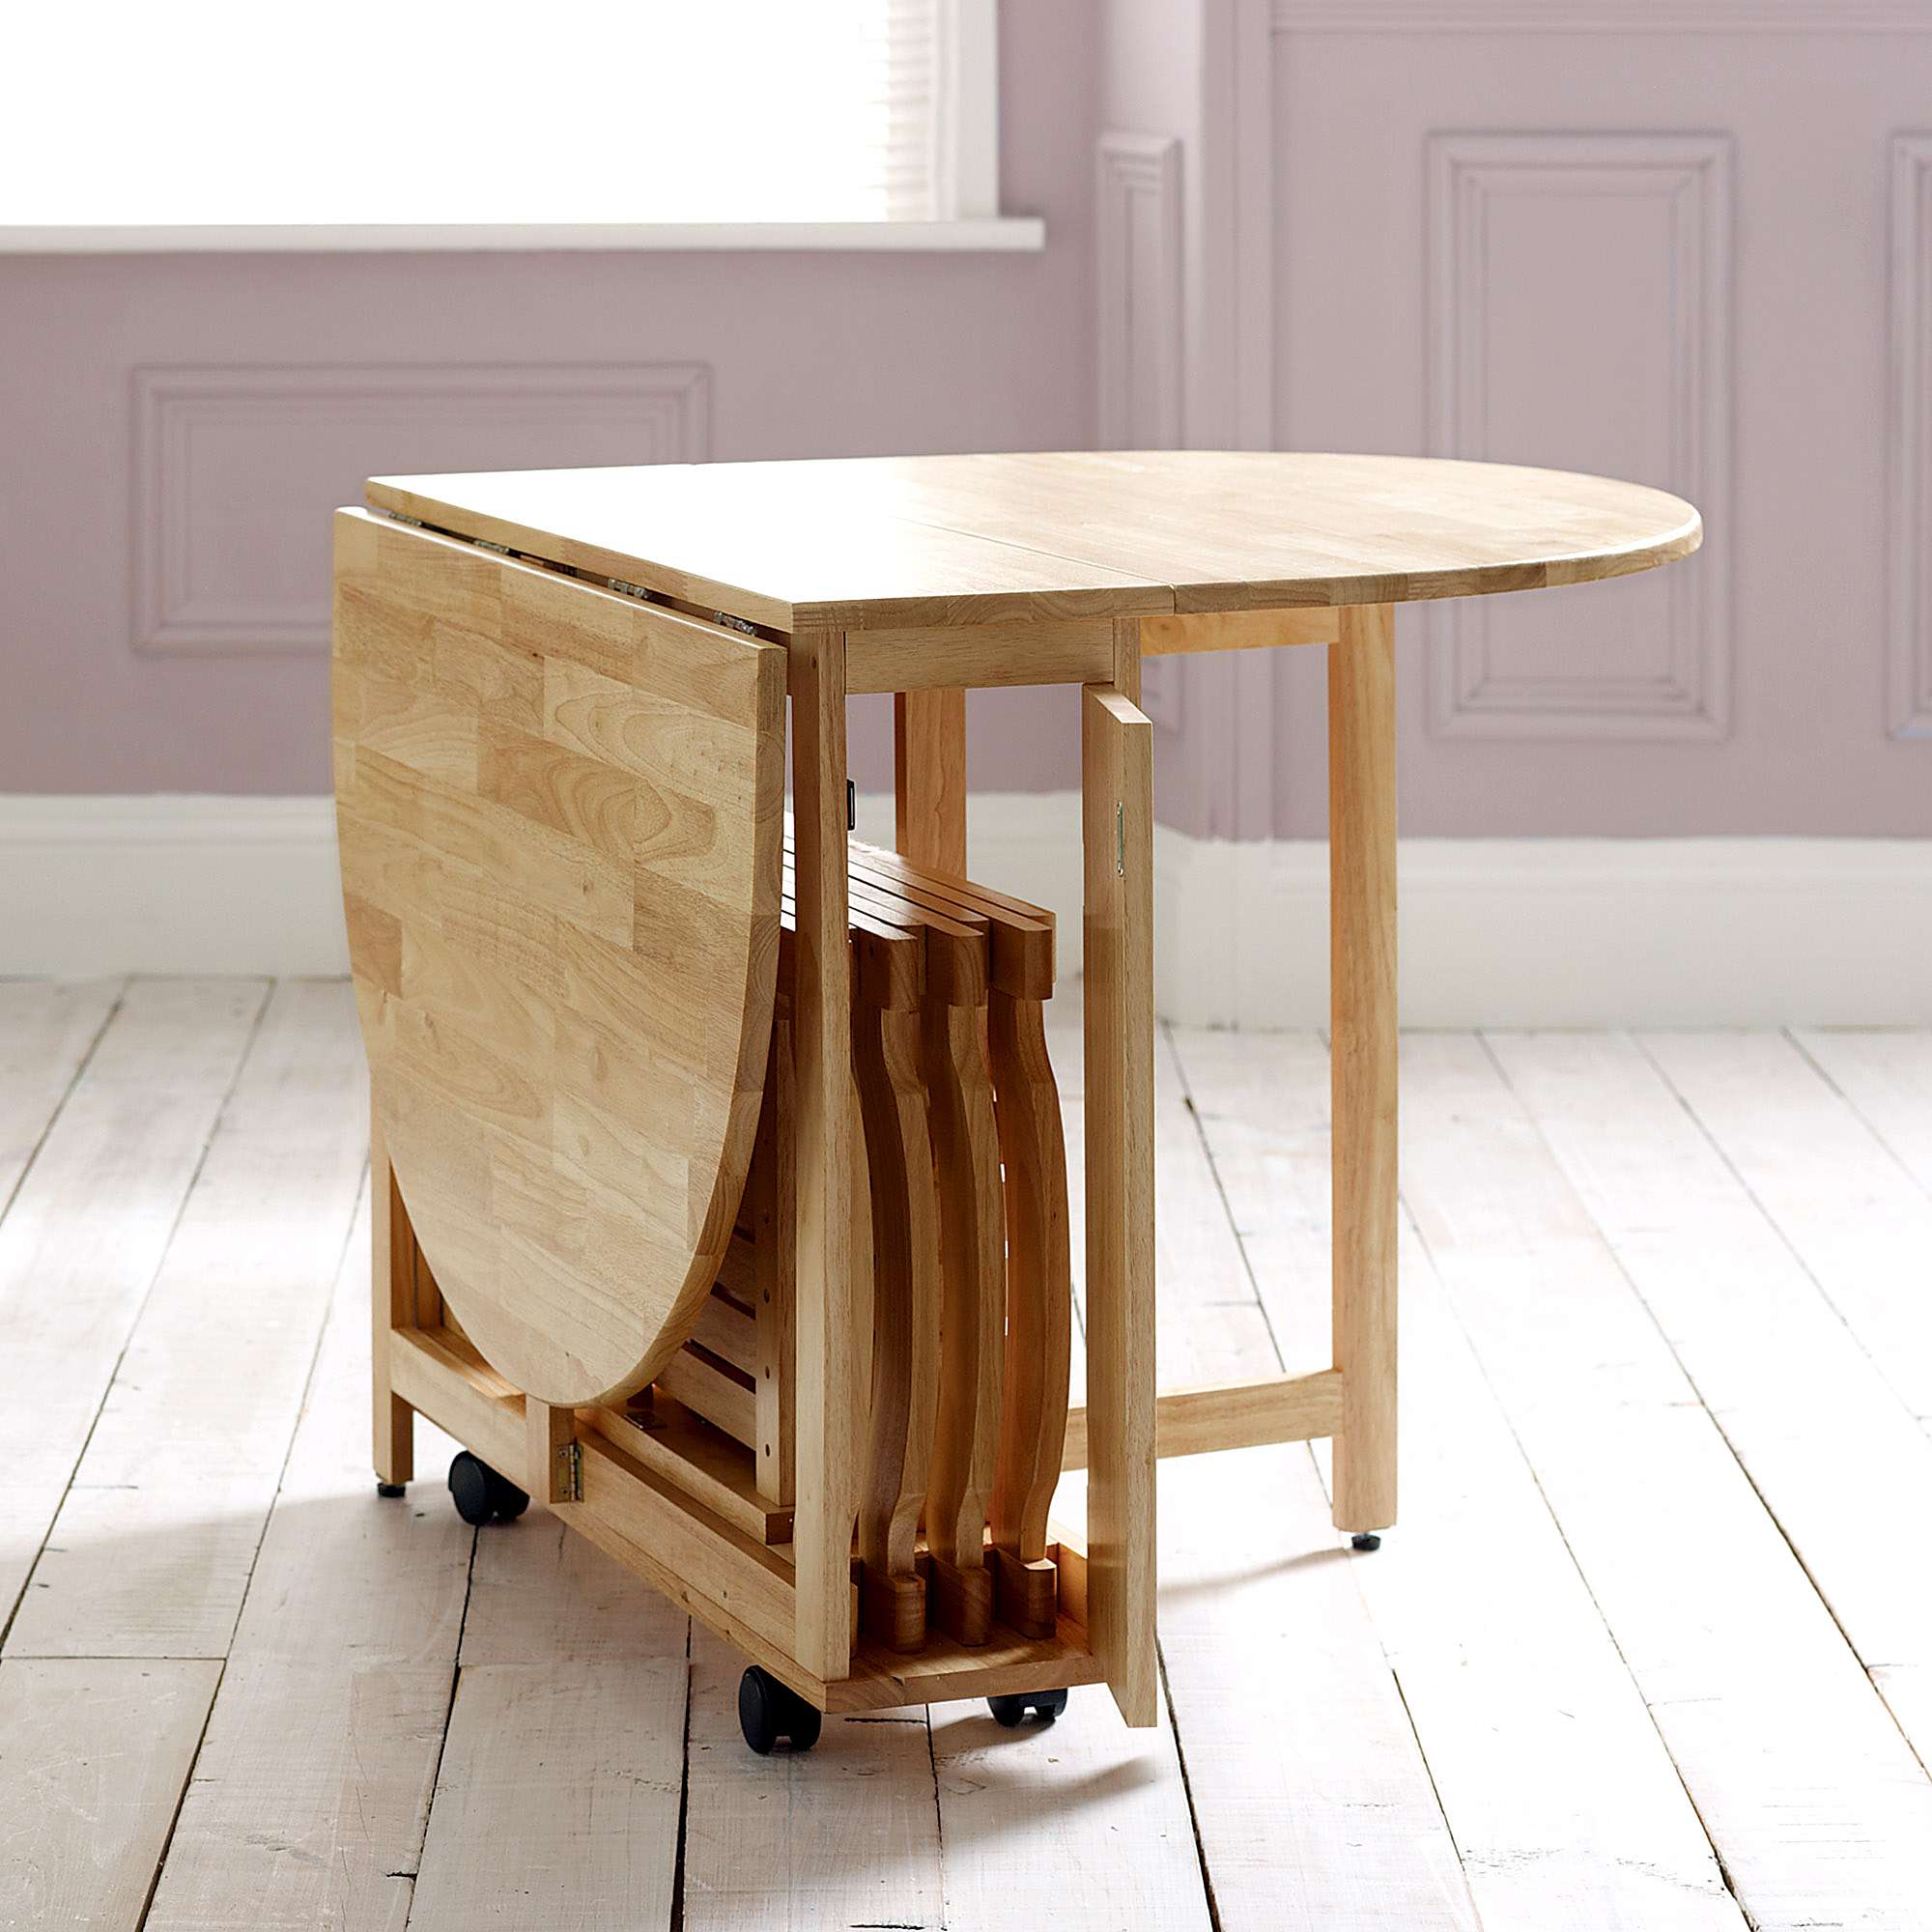 Fold Up Kitchen Table Choose A Folding Dining Table For A Small Space Adorable